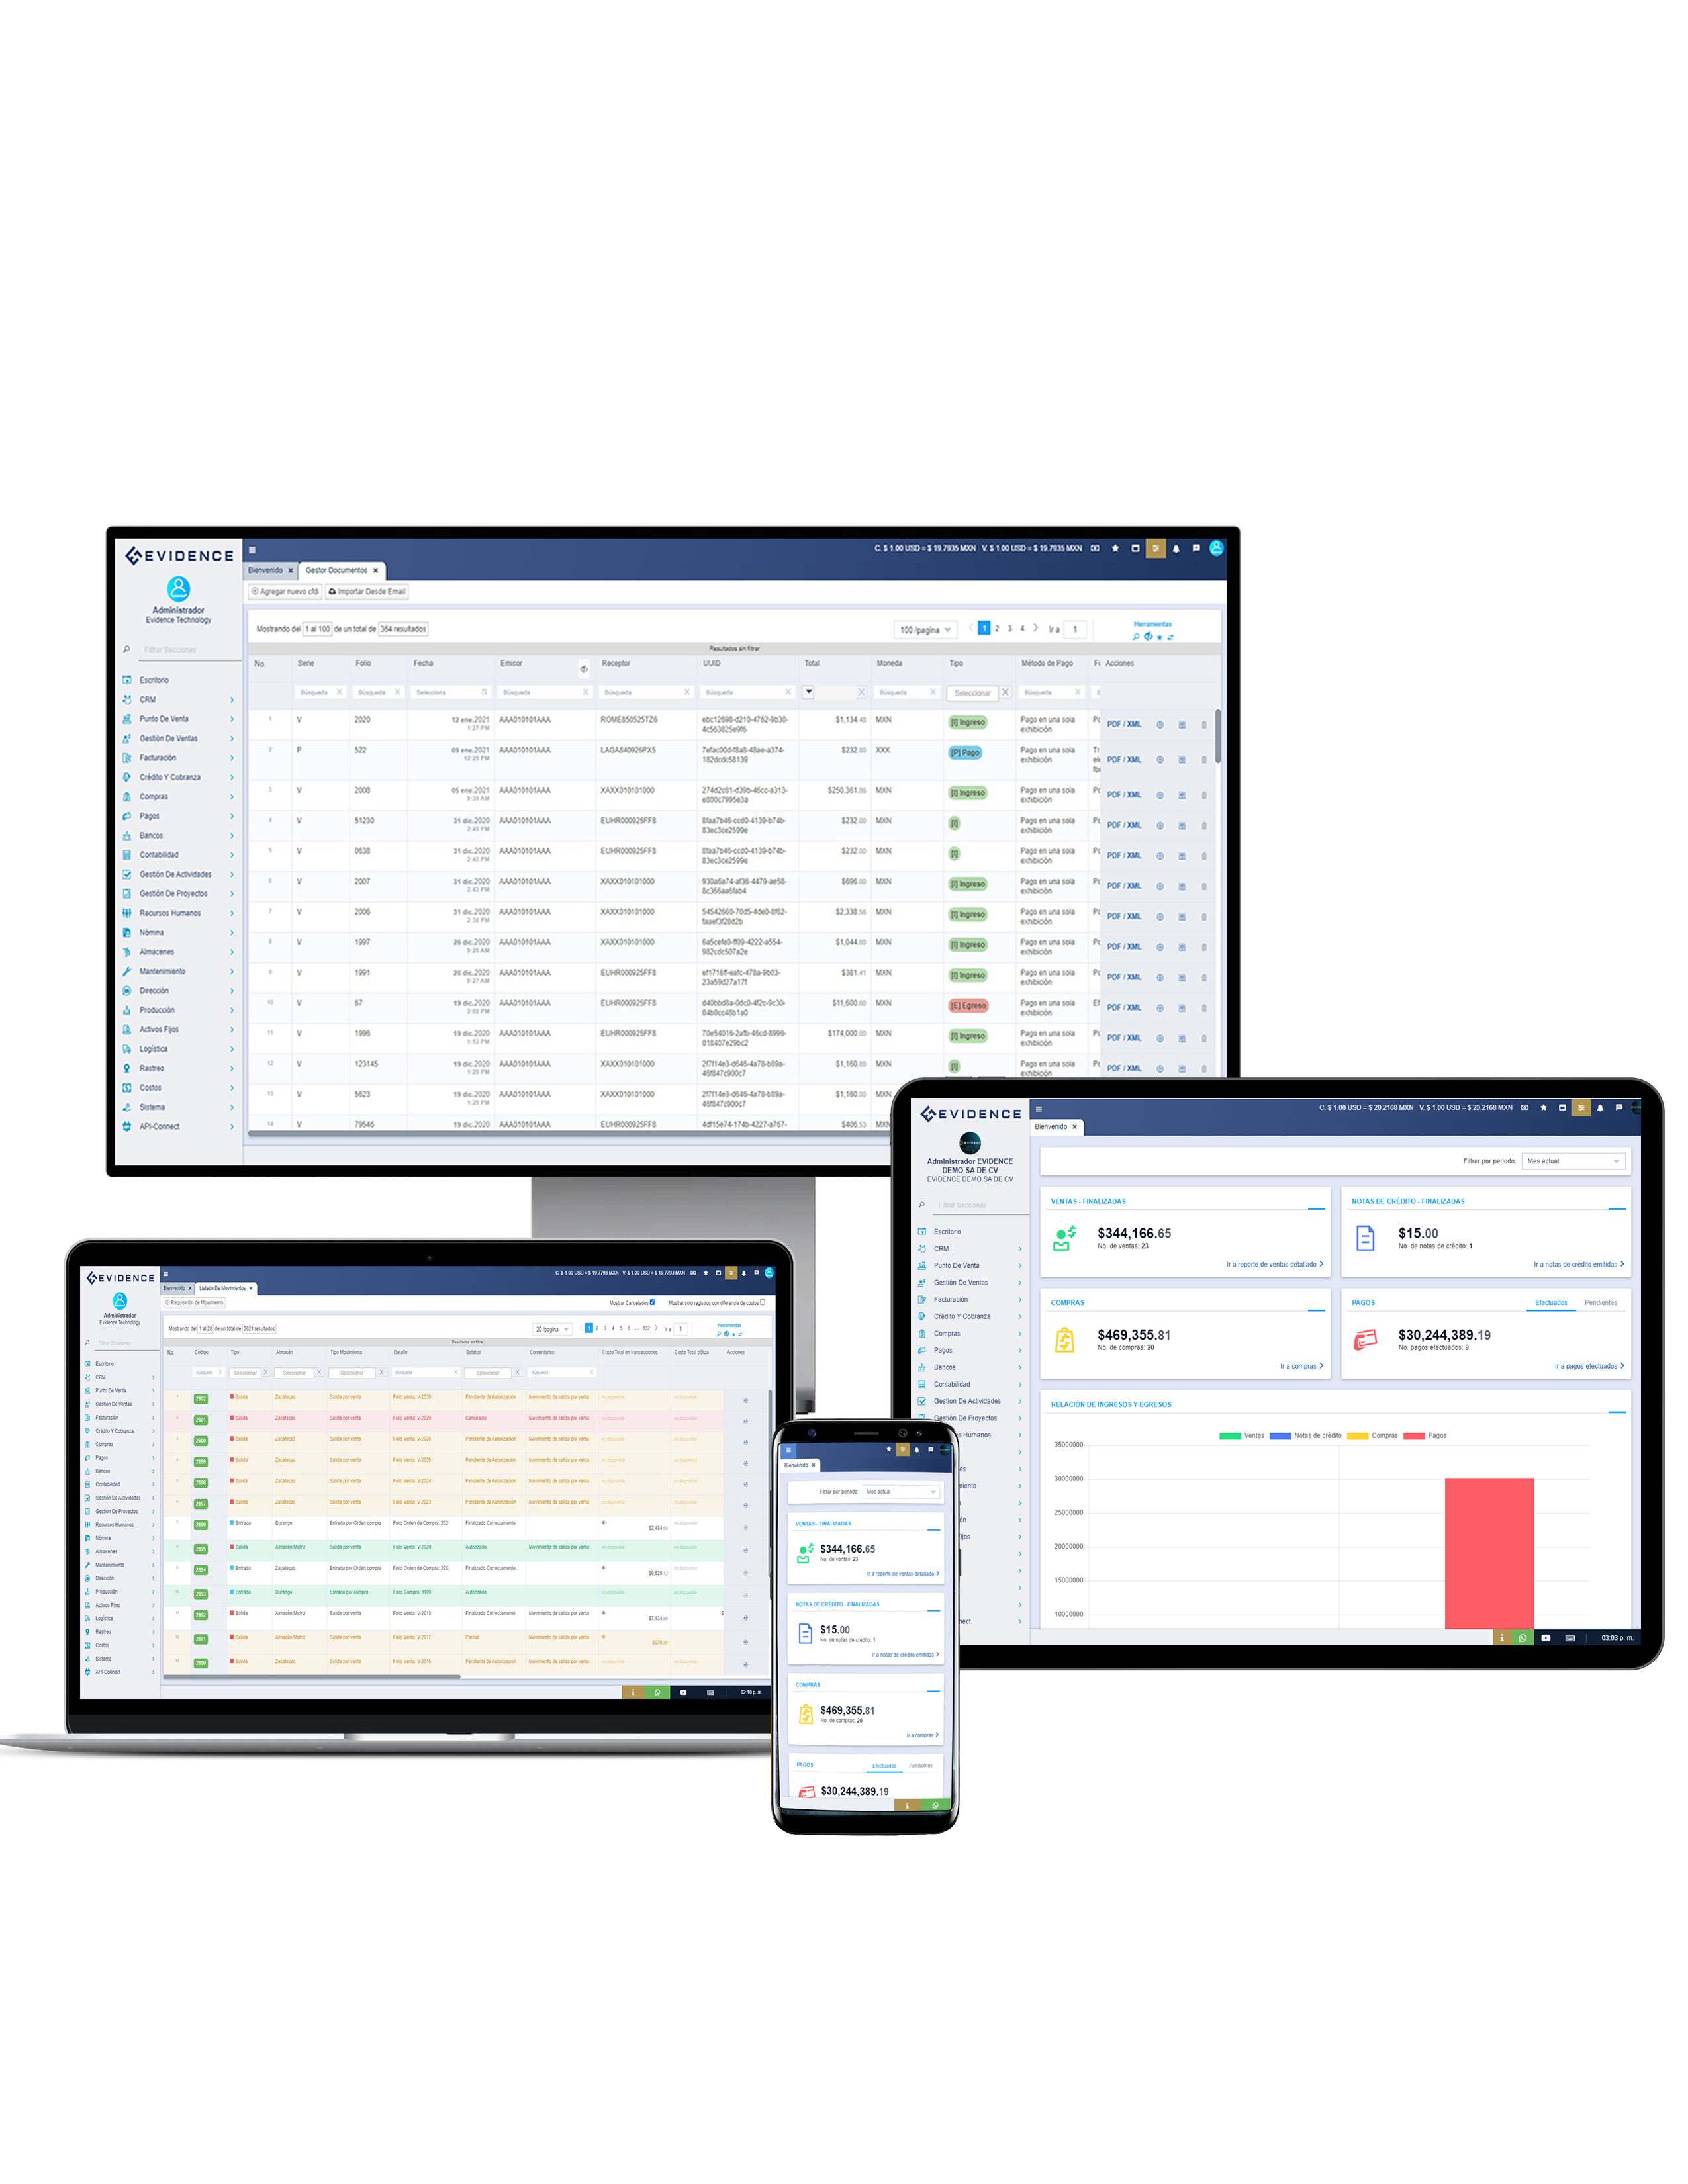 Evidence ERP displays your company's most important information in real time, automating administrative, accounting and operational processes, avoiding recaptures, downtime and necks in all its operations